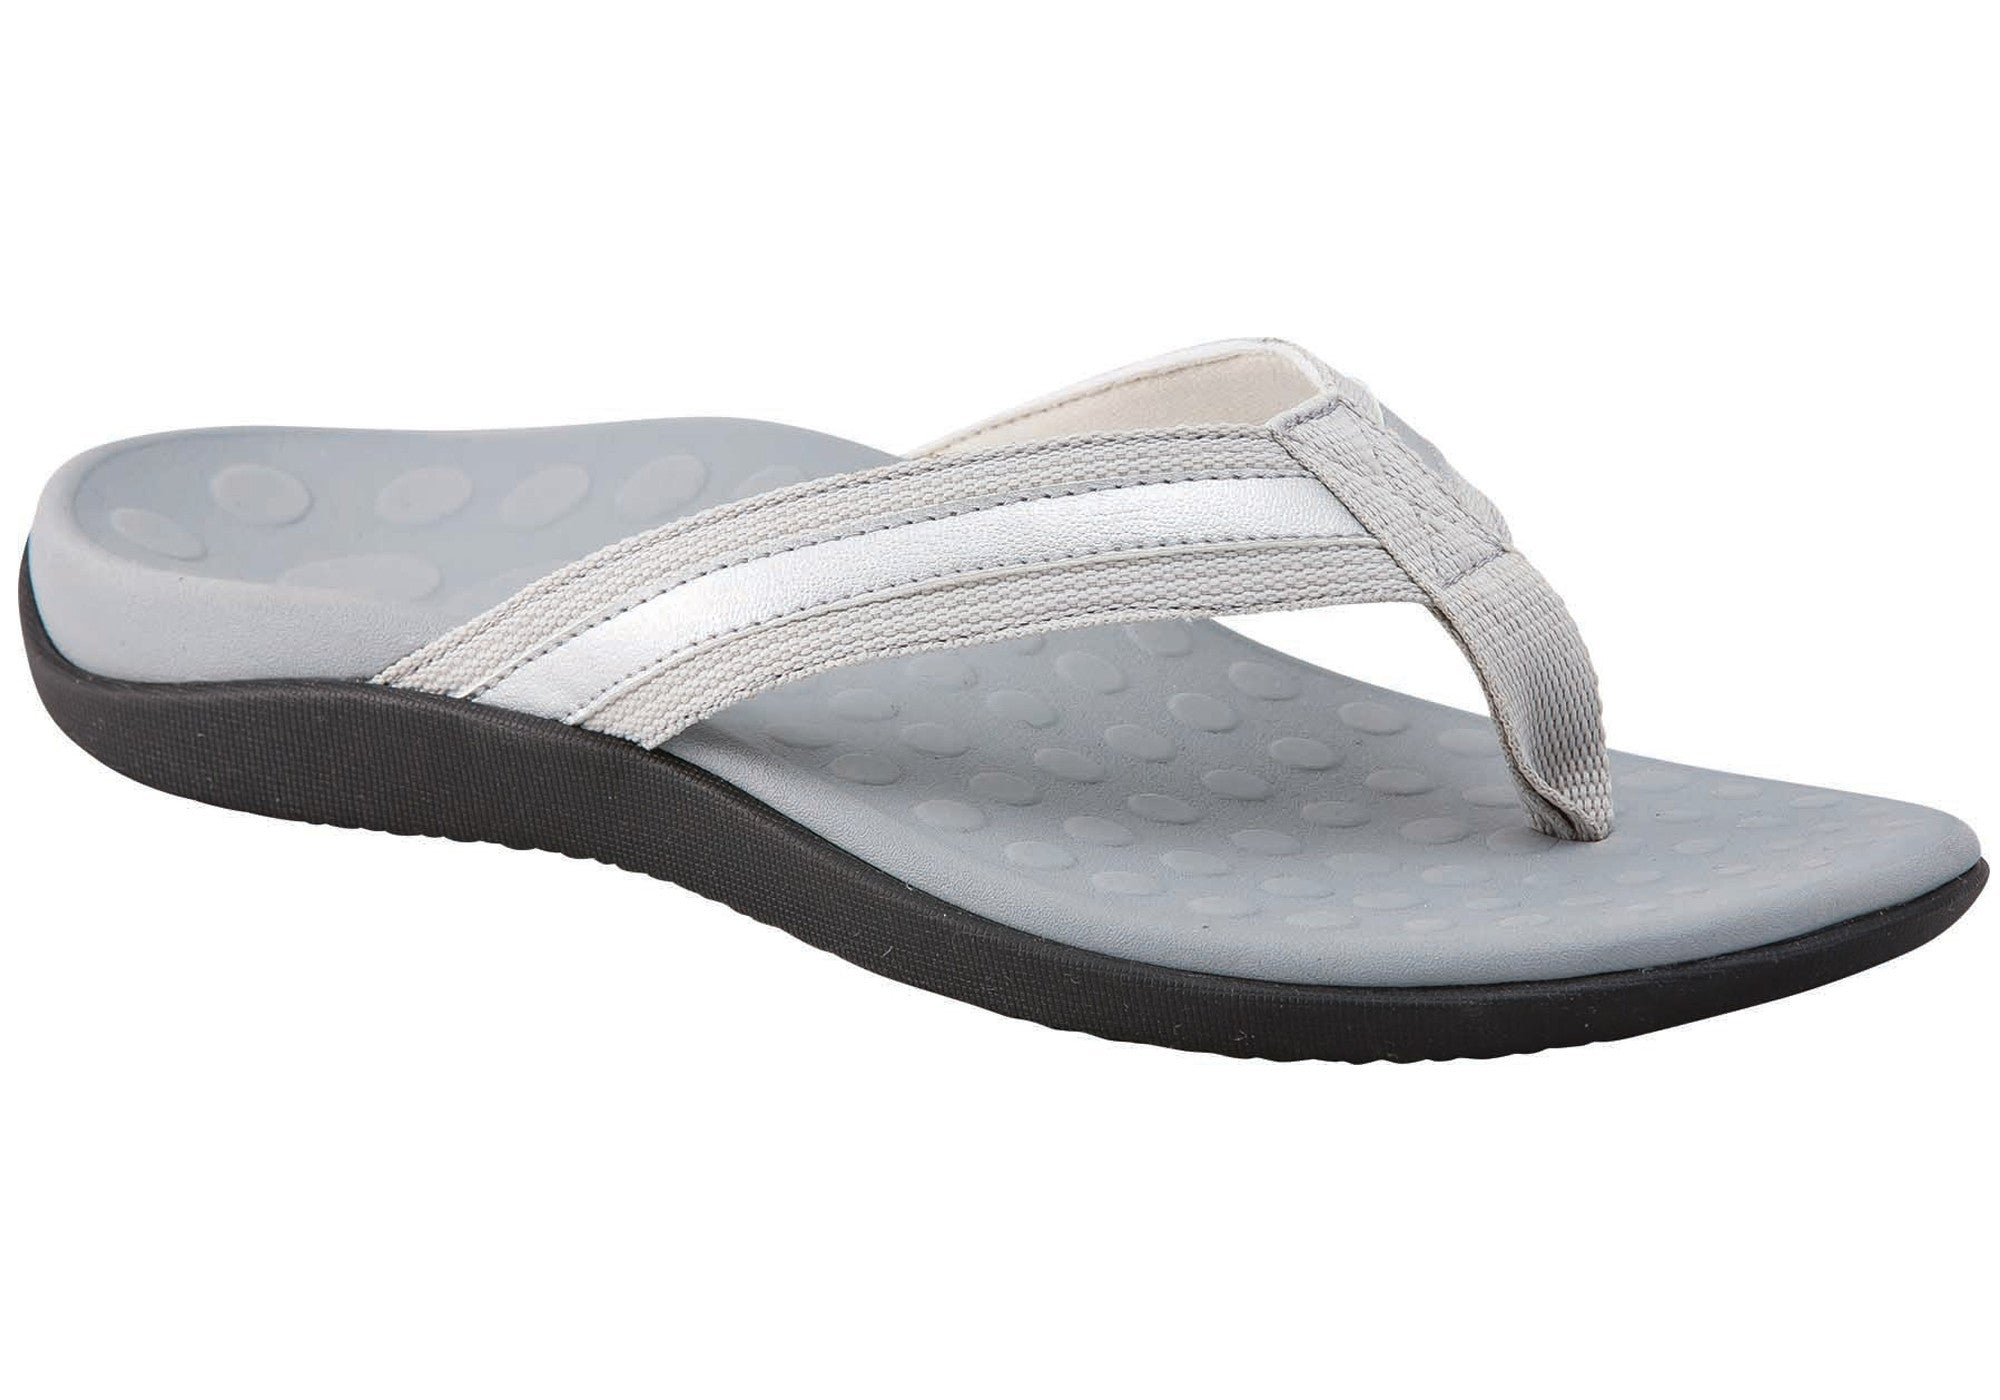 427080fd76a5 Scholl Orthaheel Tide Womens Comfort Thongs